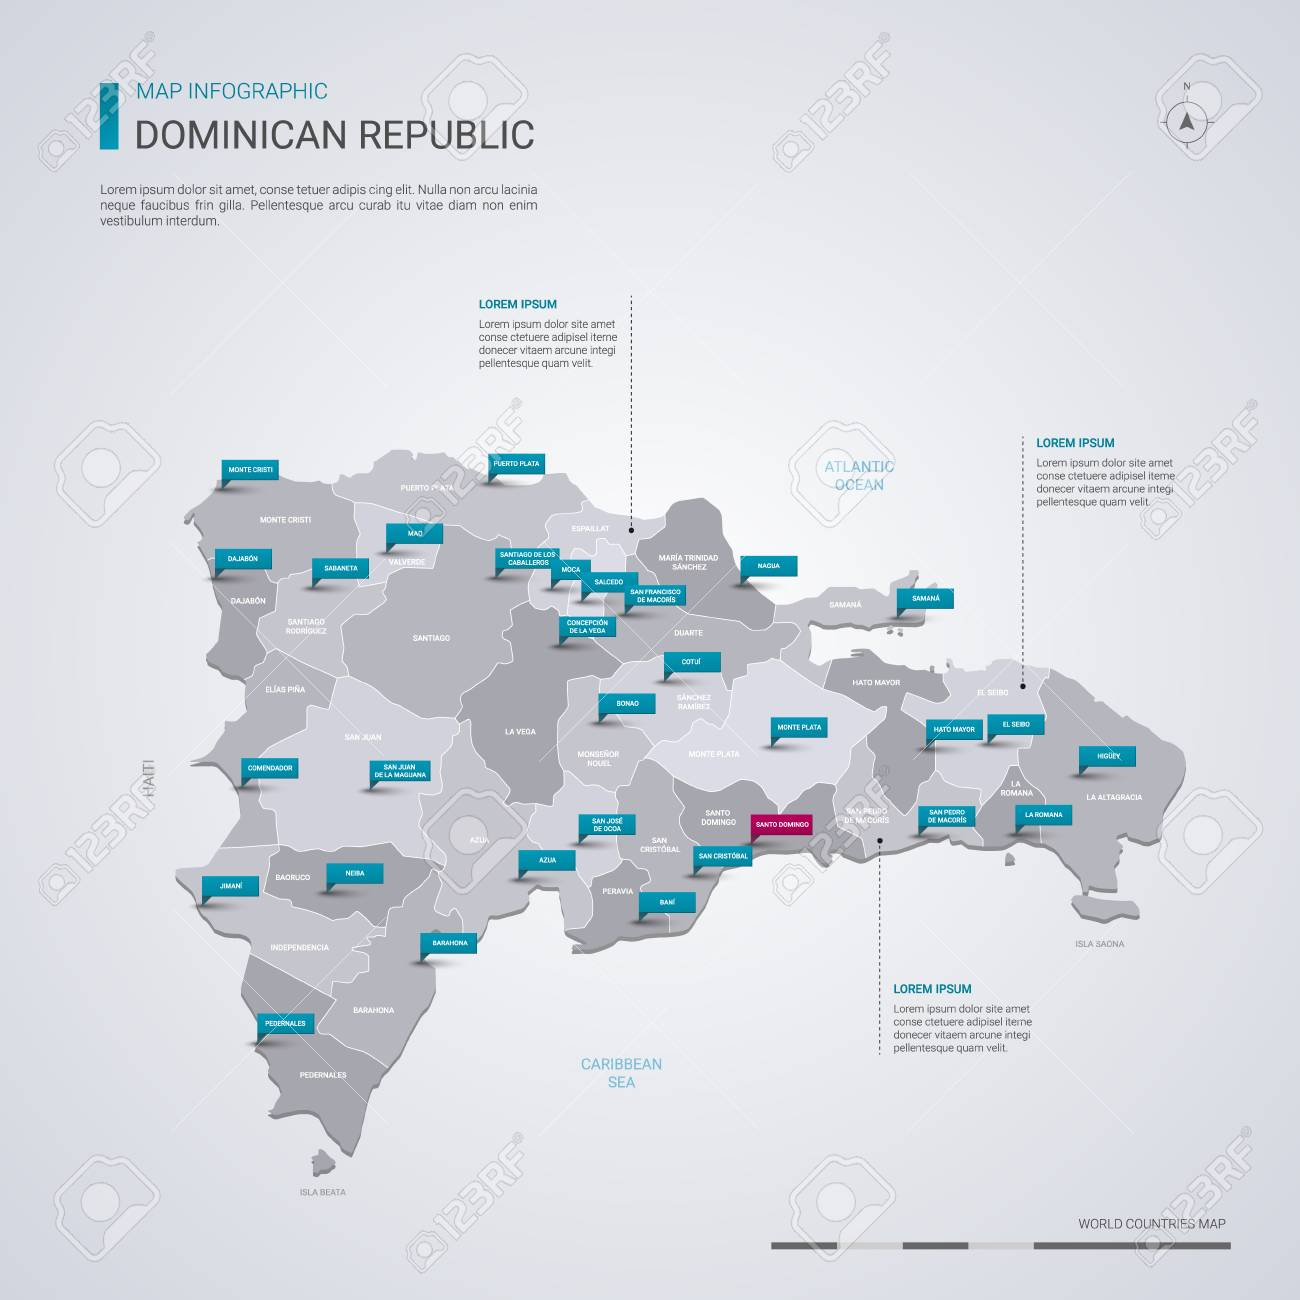 Dominican Republic vector map with infographic elements, pointer.. on paraguay cities map, rhine river cities map, barbados cities map, trinidad cities map, senegal cities map, bahamas cities map, guam cities map, antarctic cities map, luxembourg cities map, south sudan cities map, serbia cities map, western asia cities map, slovakia cities map, united states of america cities map, latvia cities map, belarus cities map, newfoundland and labrador cities map, nova scotia cities map, chad cities map, tibet cities map,